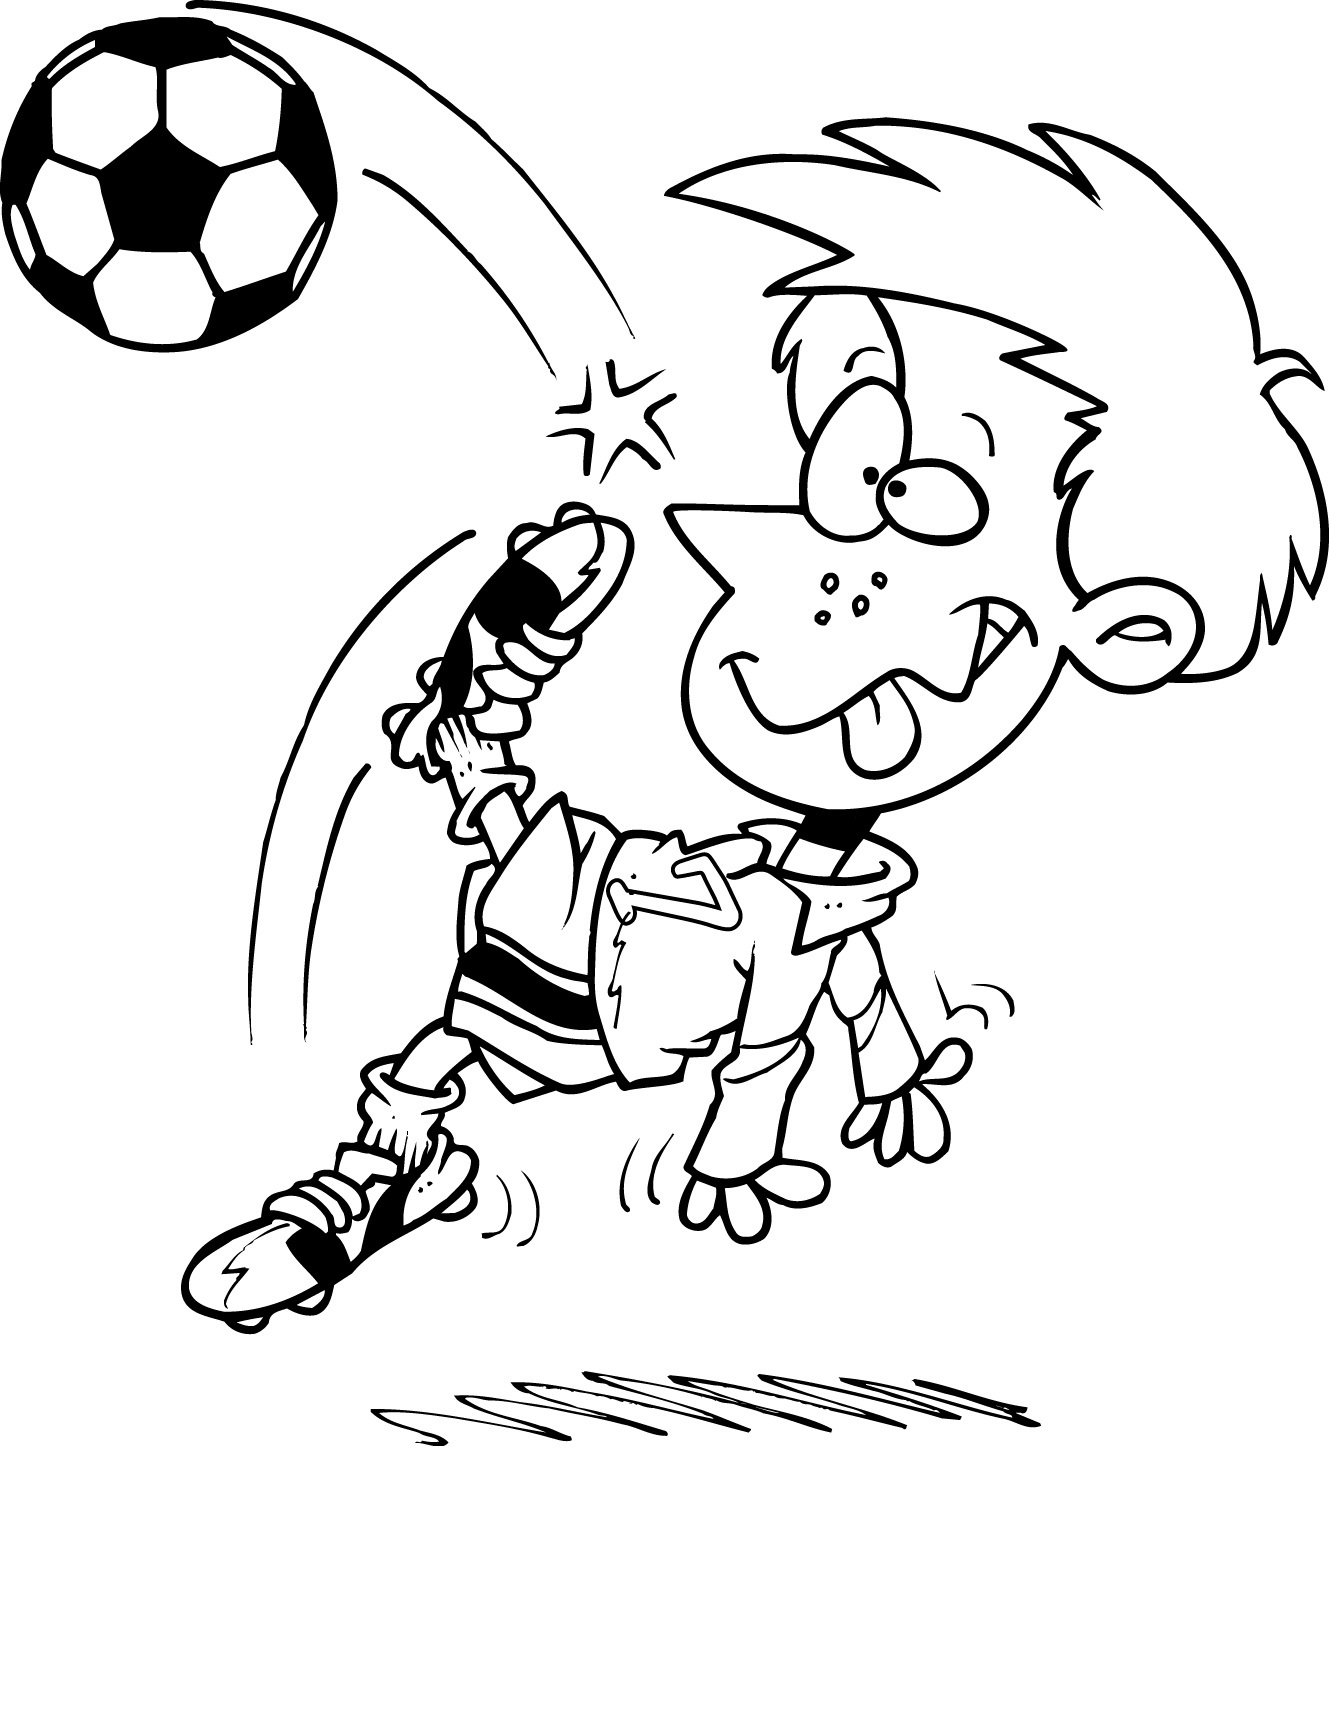 1329x1724 Free Printable Soccer Coloring Pages For Kids